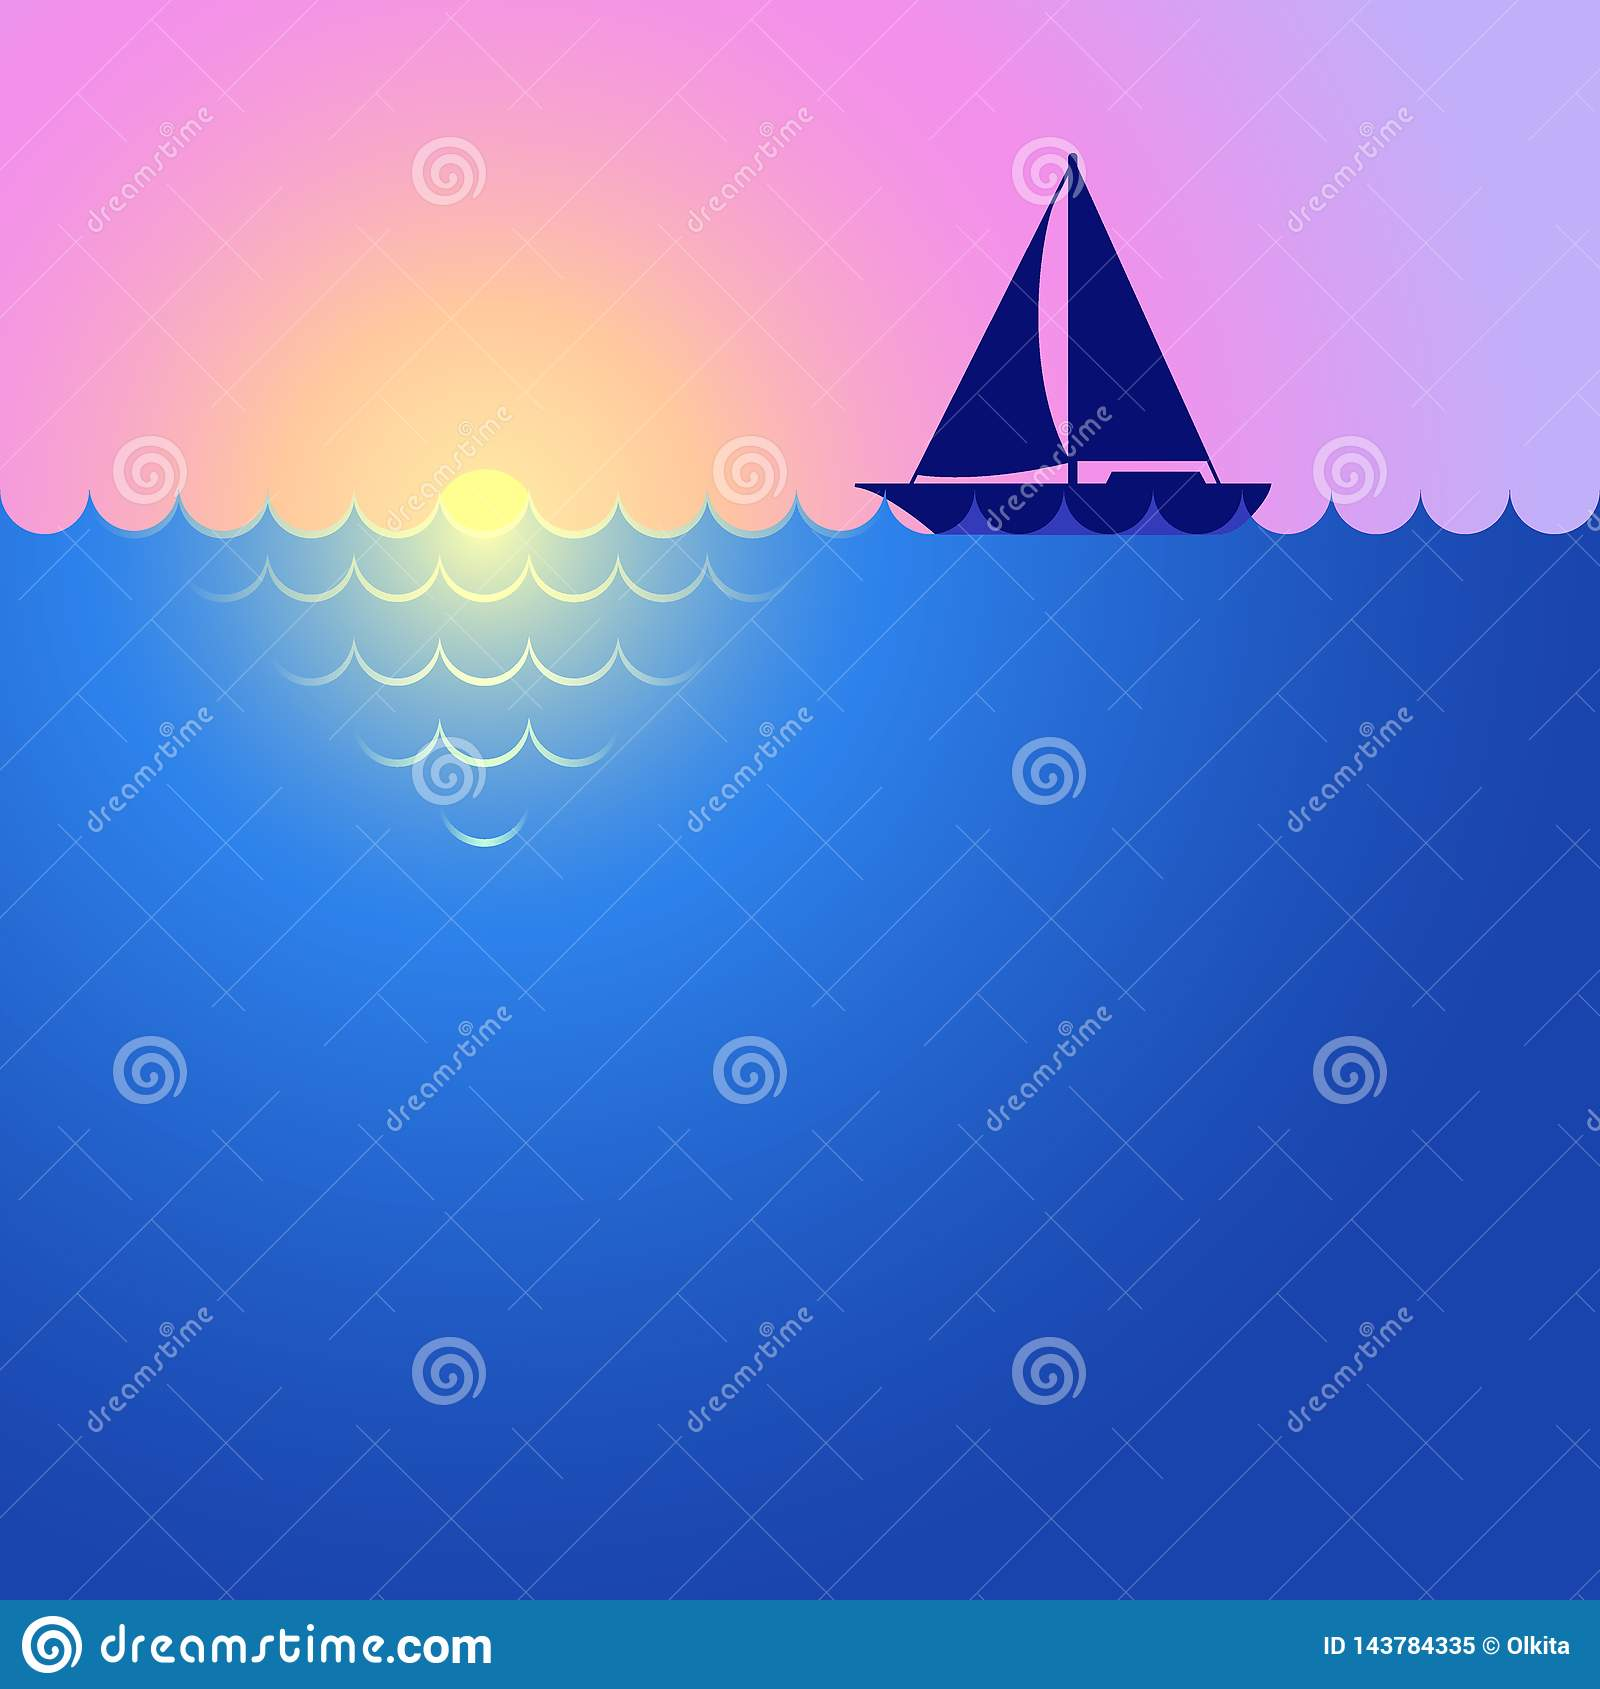 Sunset, sunrise, boat and ocean. Landscape with yacht. Yacht sailing on horizon. Sea cruise